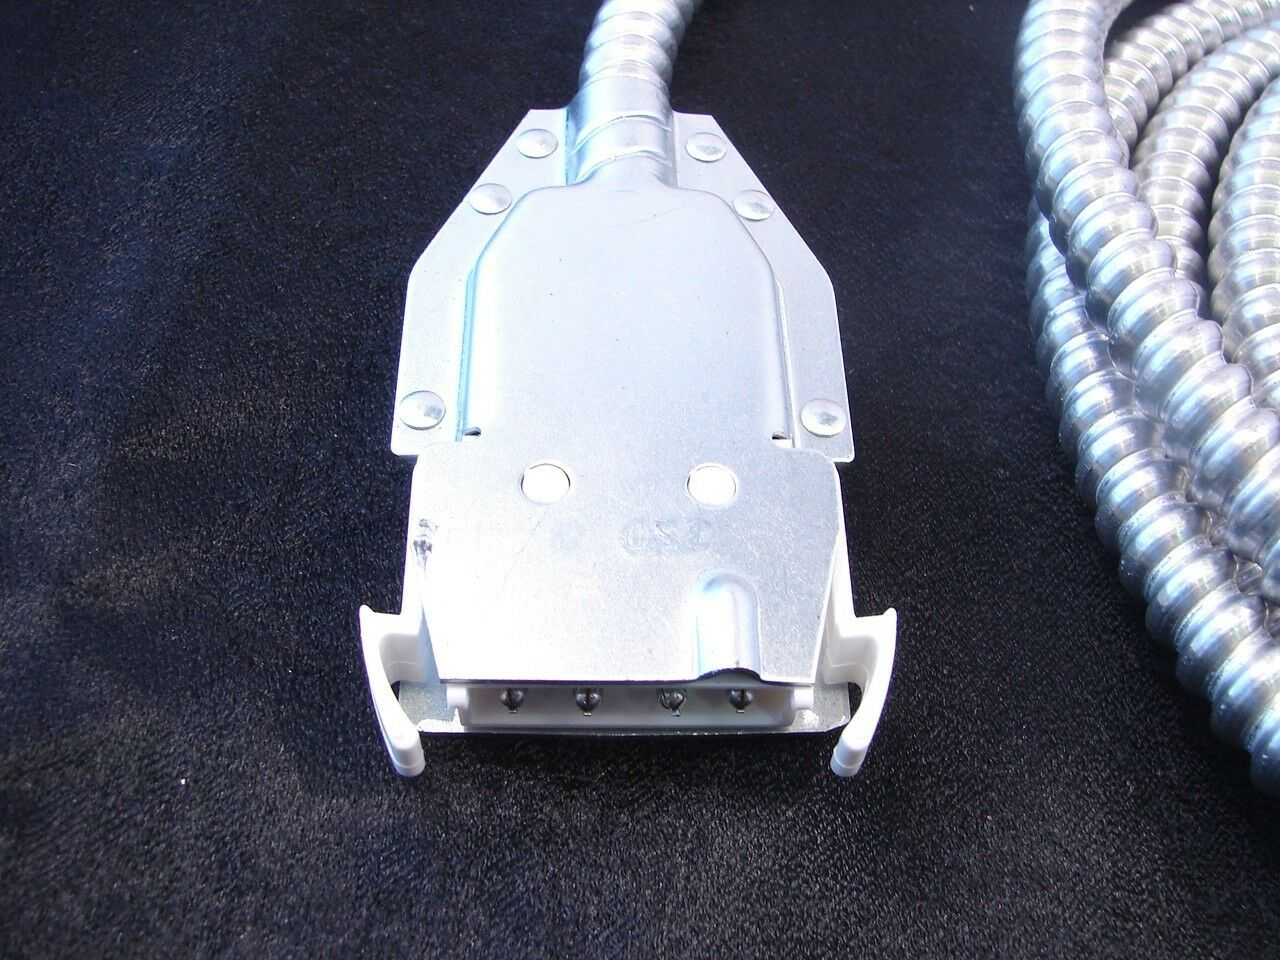 Lithonia Lighting Extender Cable QE120 12/2g11 Reloc Wiring System ...